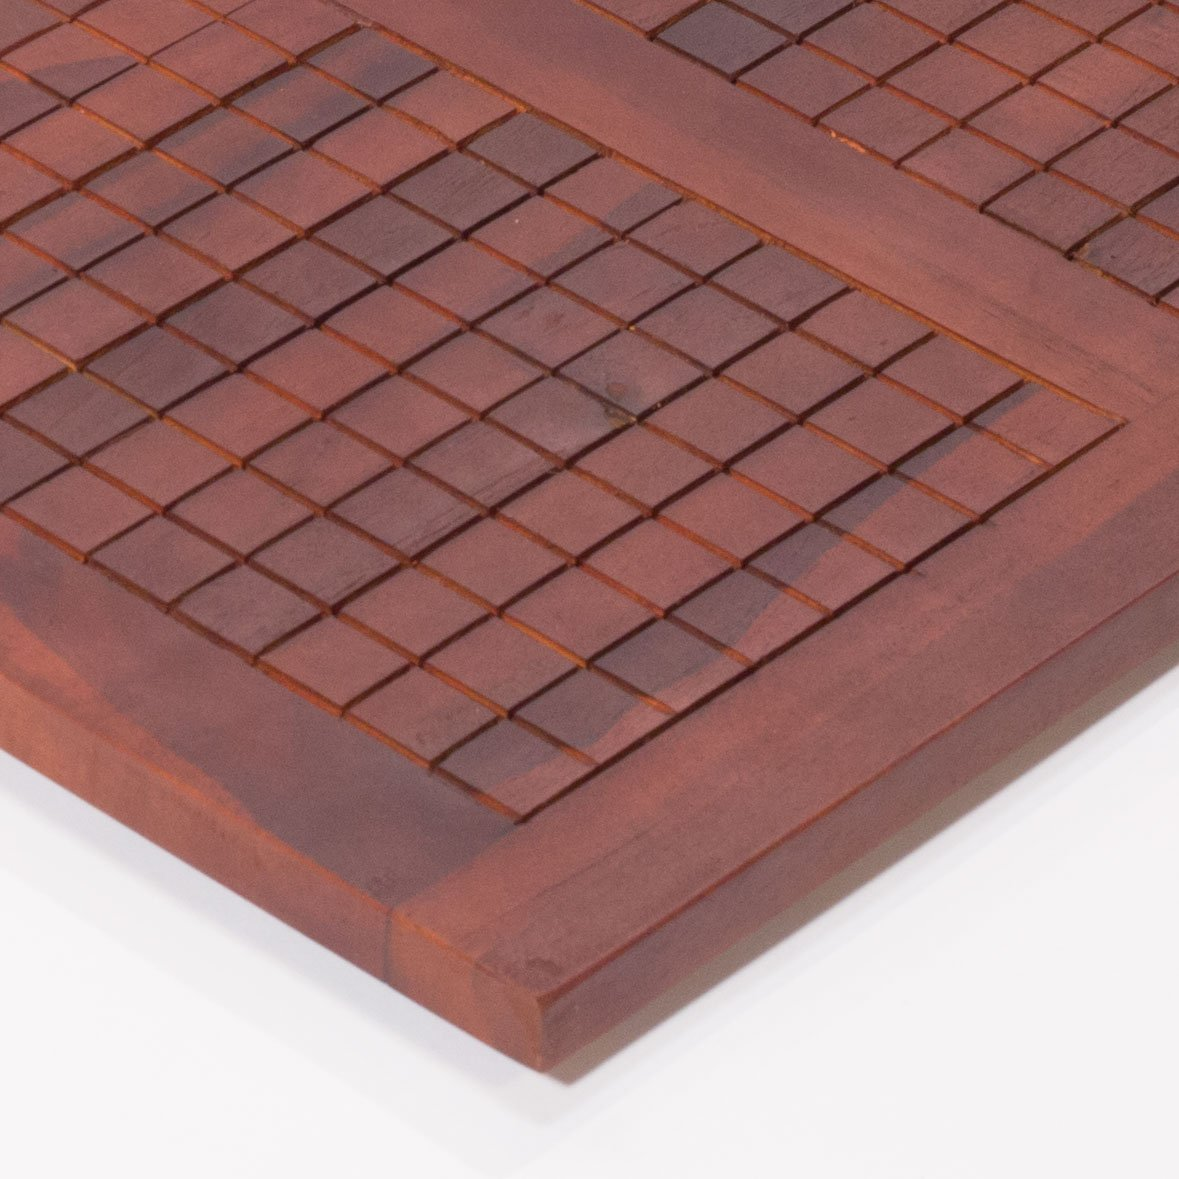 40'' X 20'' Non Slip Teak Shower Floor Bath Bathroom Mat by Decoteak (Image #5)